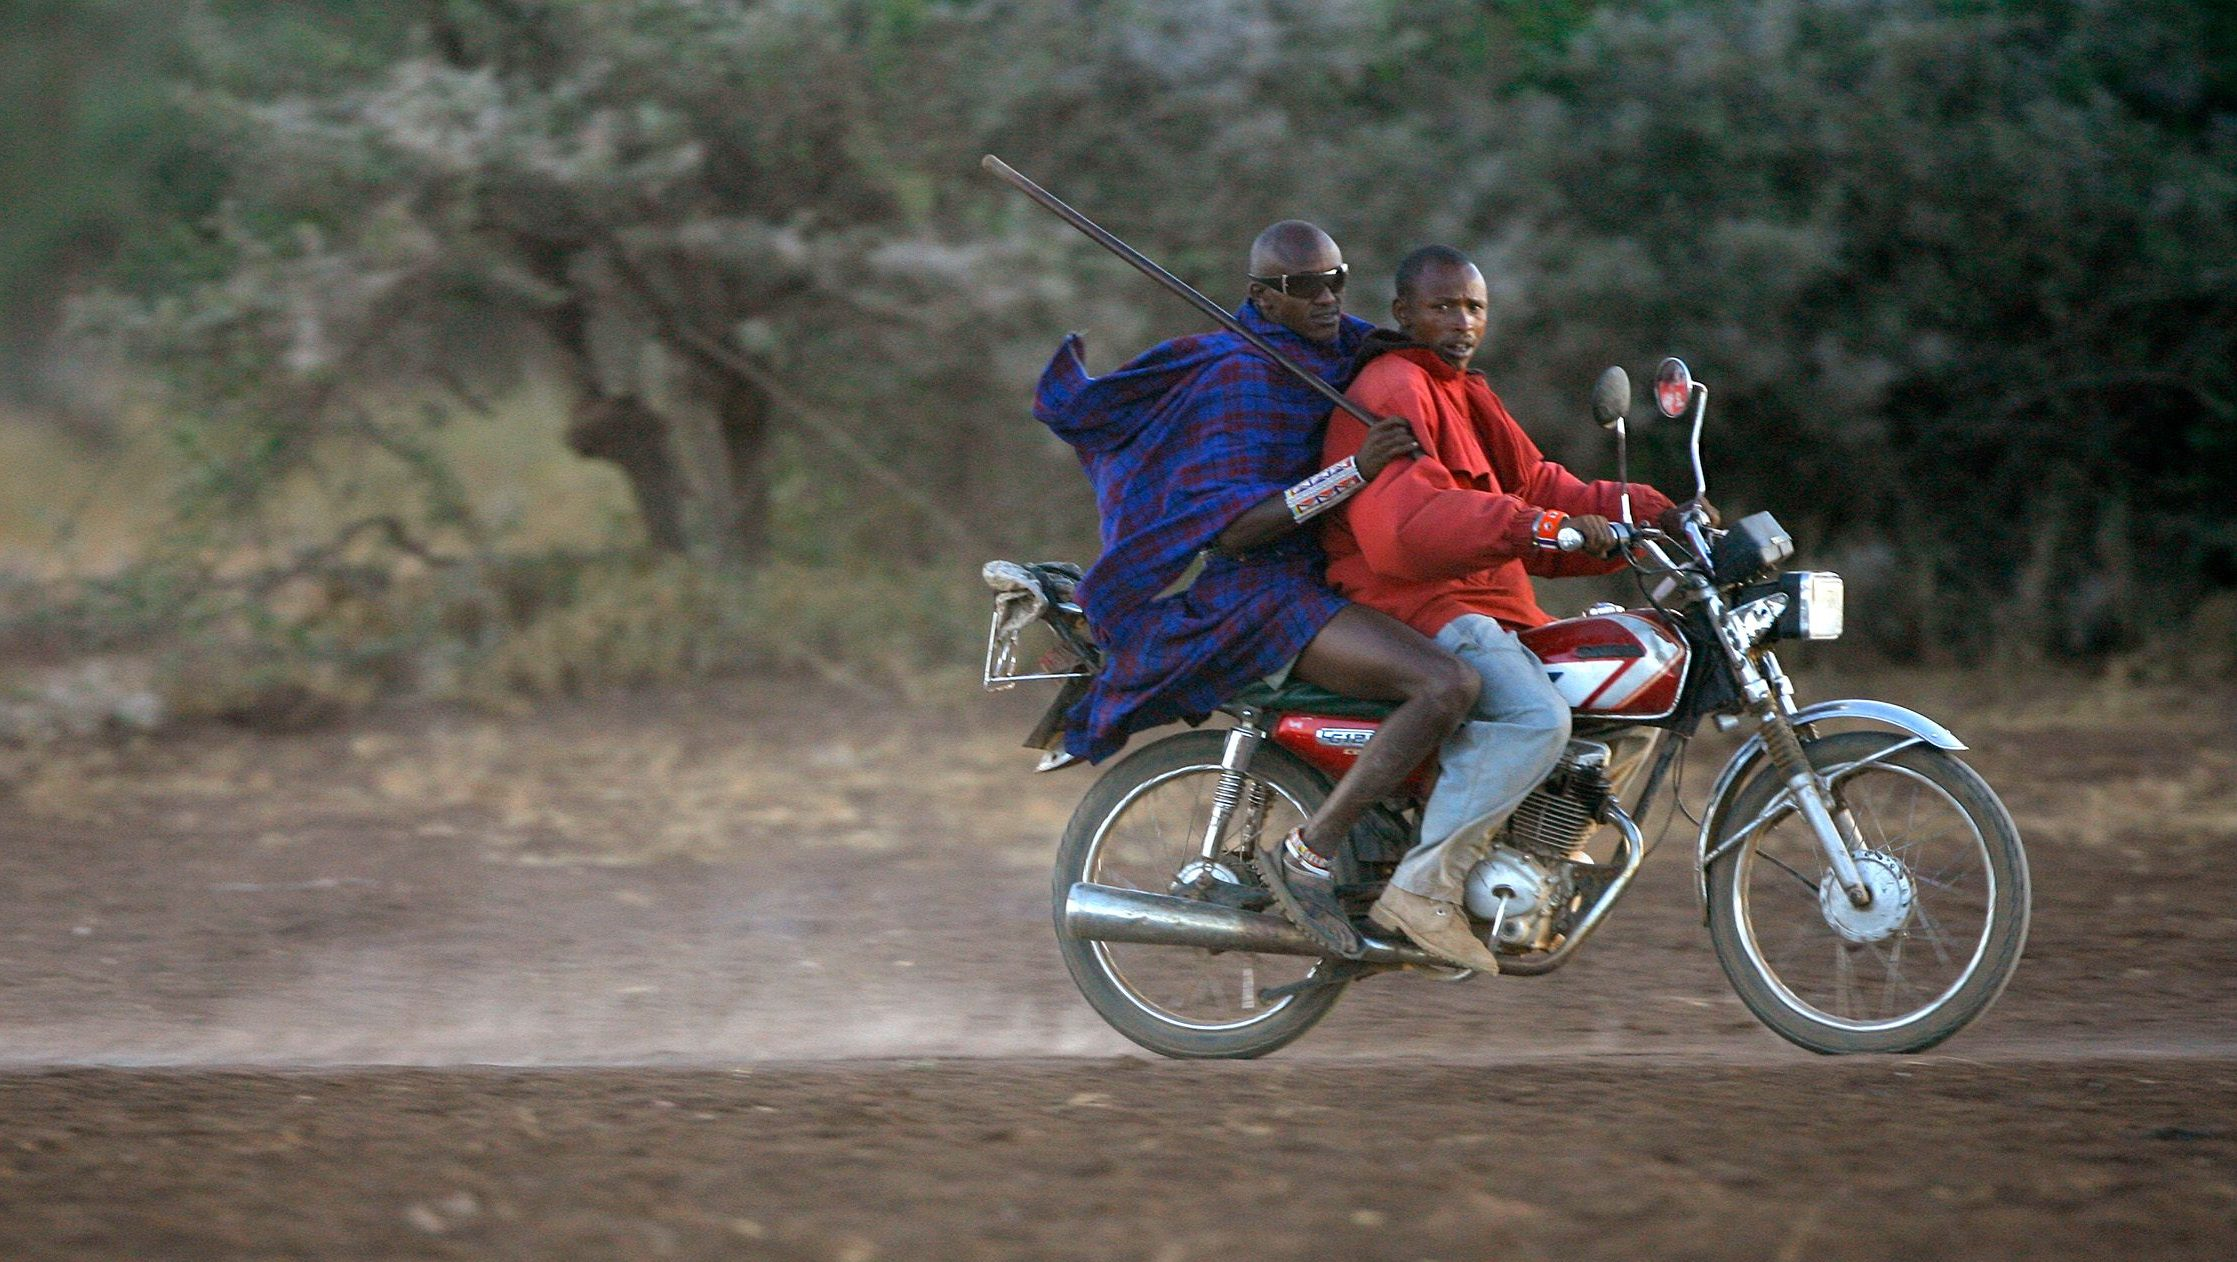 Masai men ride on a motorcycle in the Amboseli national park, Kenya, March 21 2007.